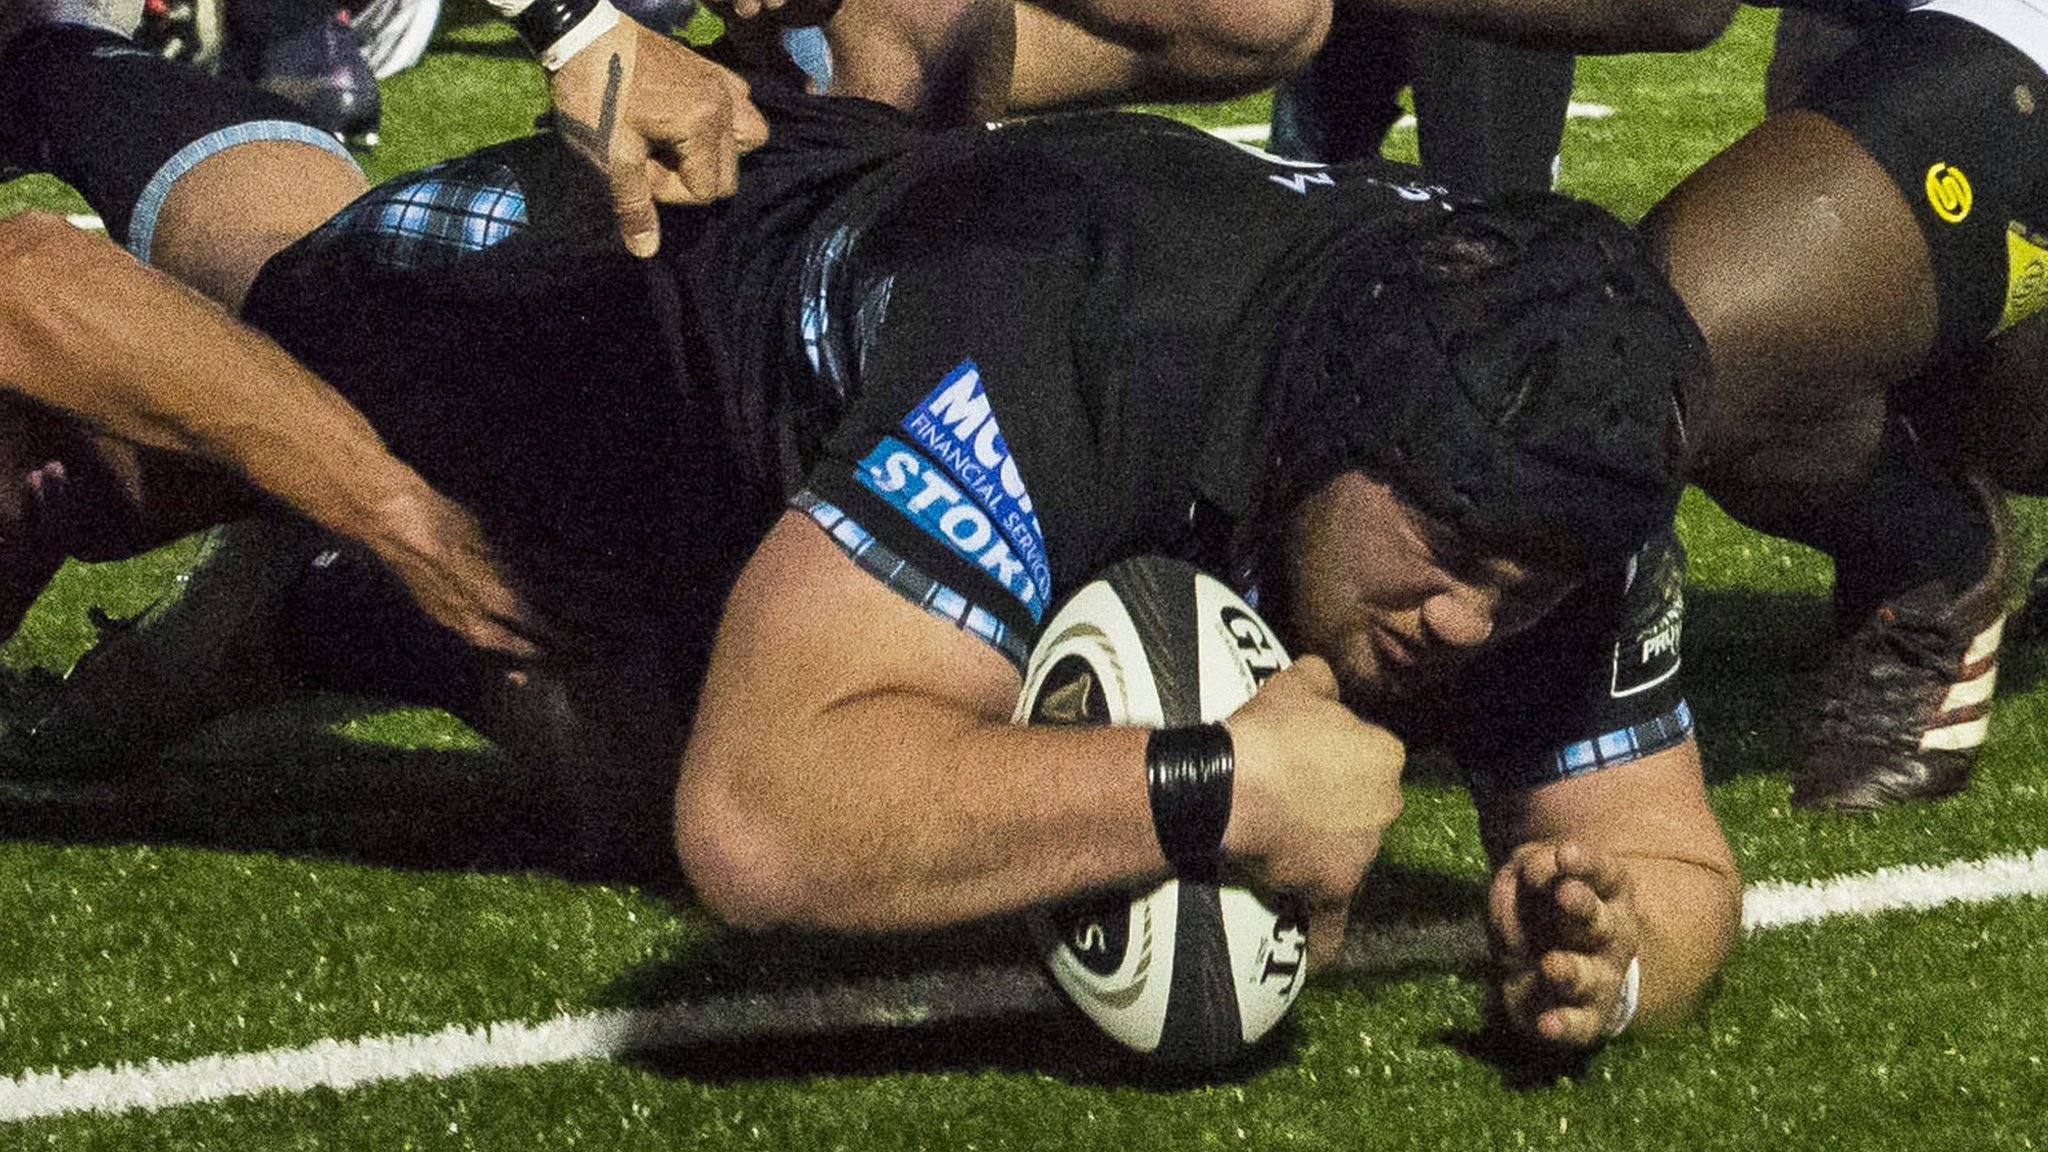 Pro14: Glasgow Warriors 'love' artificial pitch despite Scarlets criticism